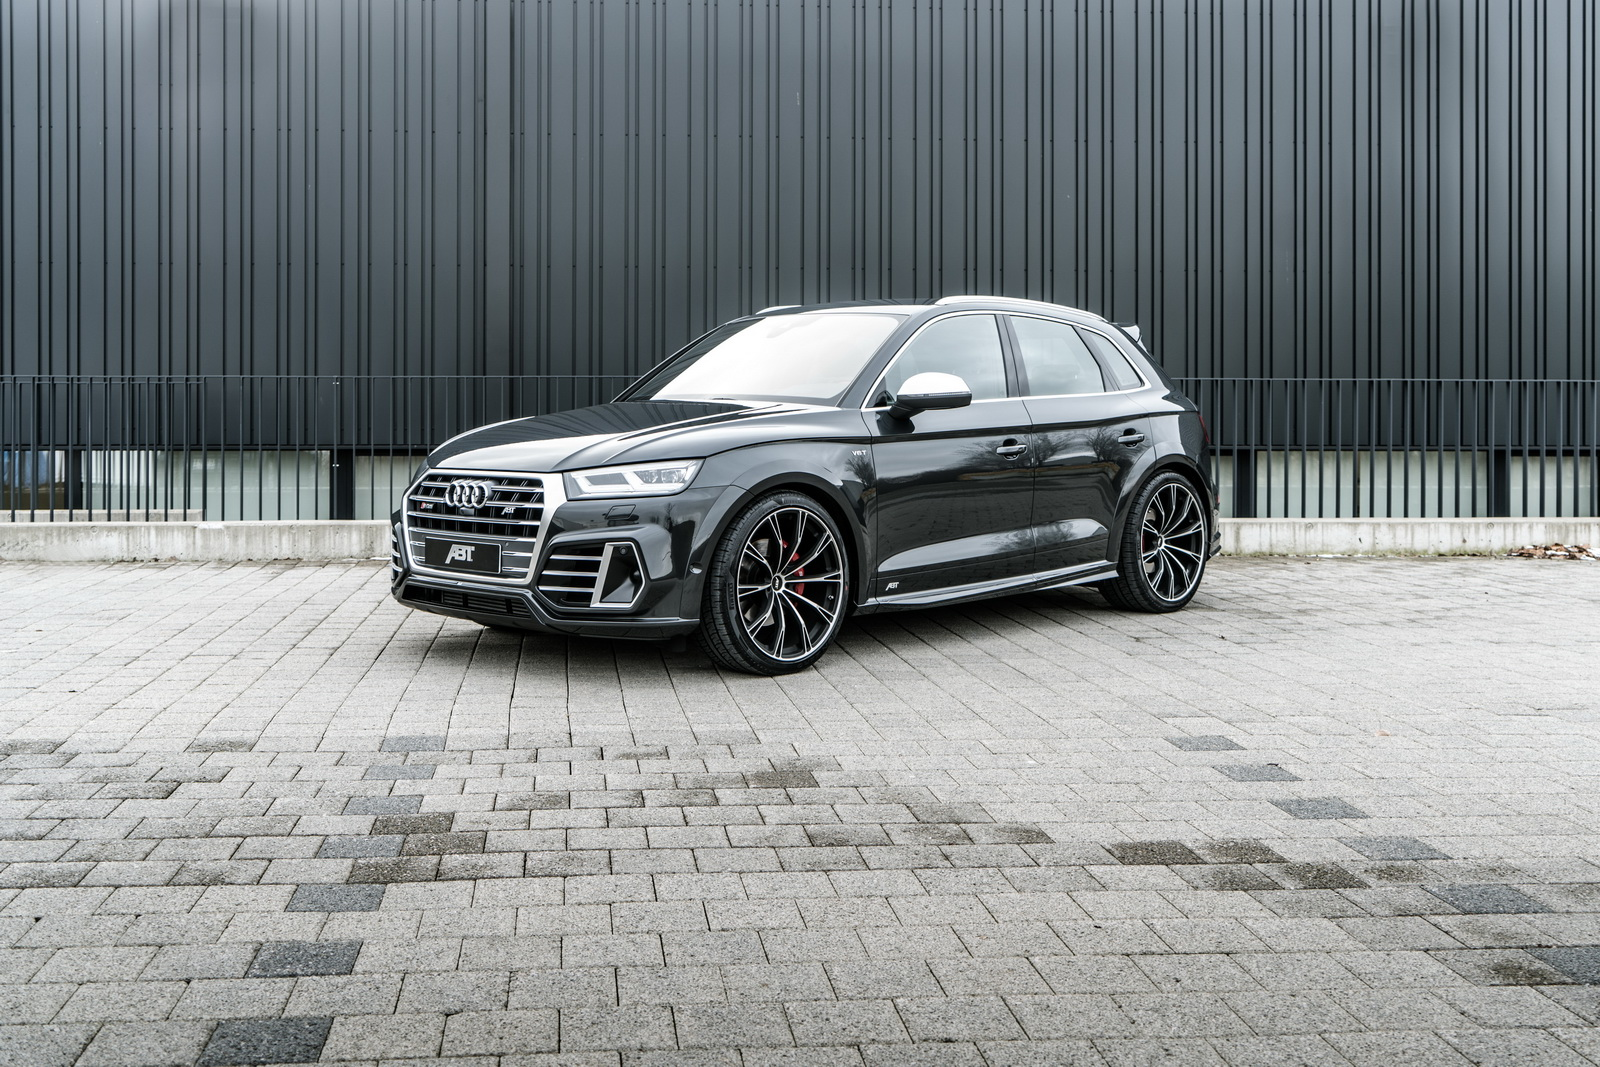 audi sq5 tuning by abt includes widebody kit and 425 hp autoevolution. Black Bedroom Furniture Sets. Home Design Ideas